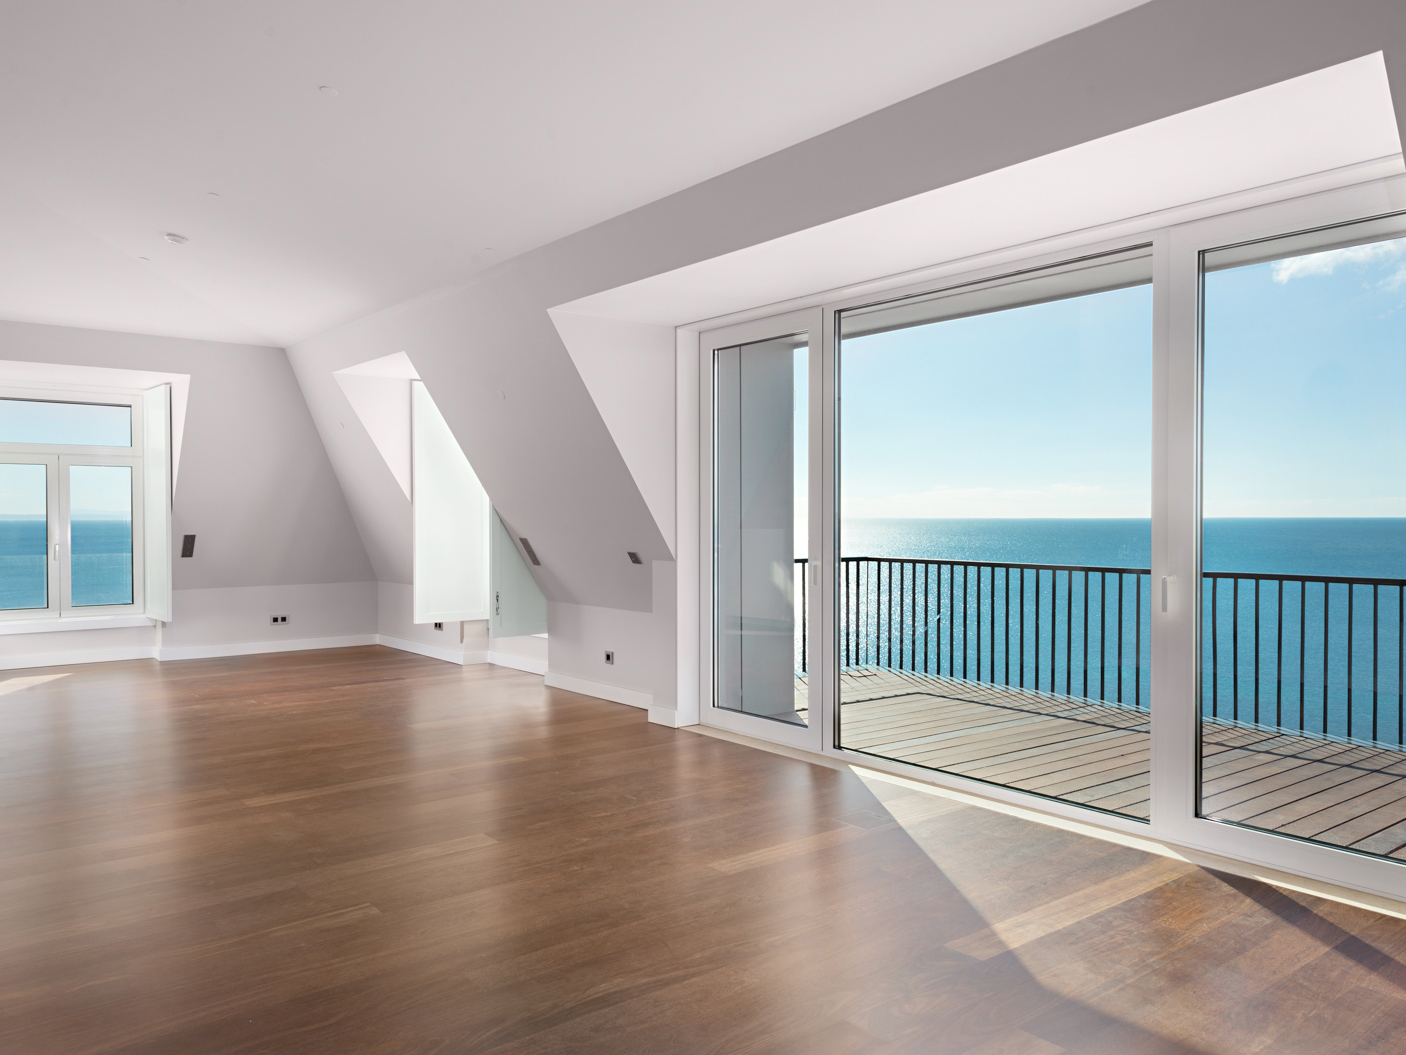 4 BEDROOM APARTMENT WITH SEA VIEW, IN S. JOÃO DO ESTORIL